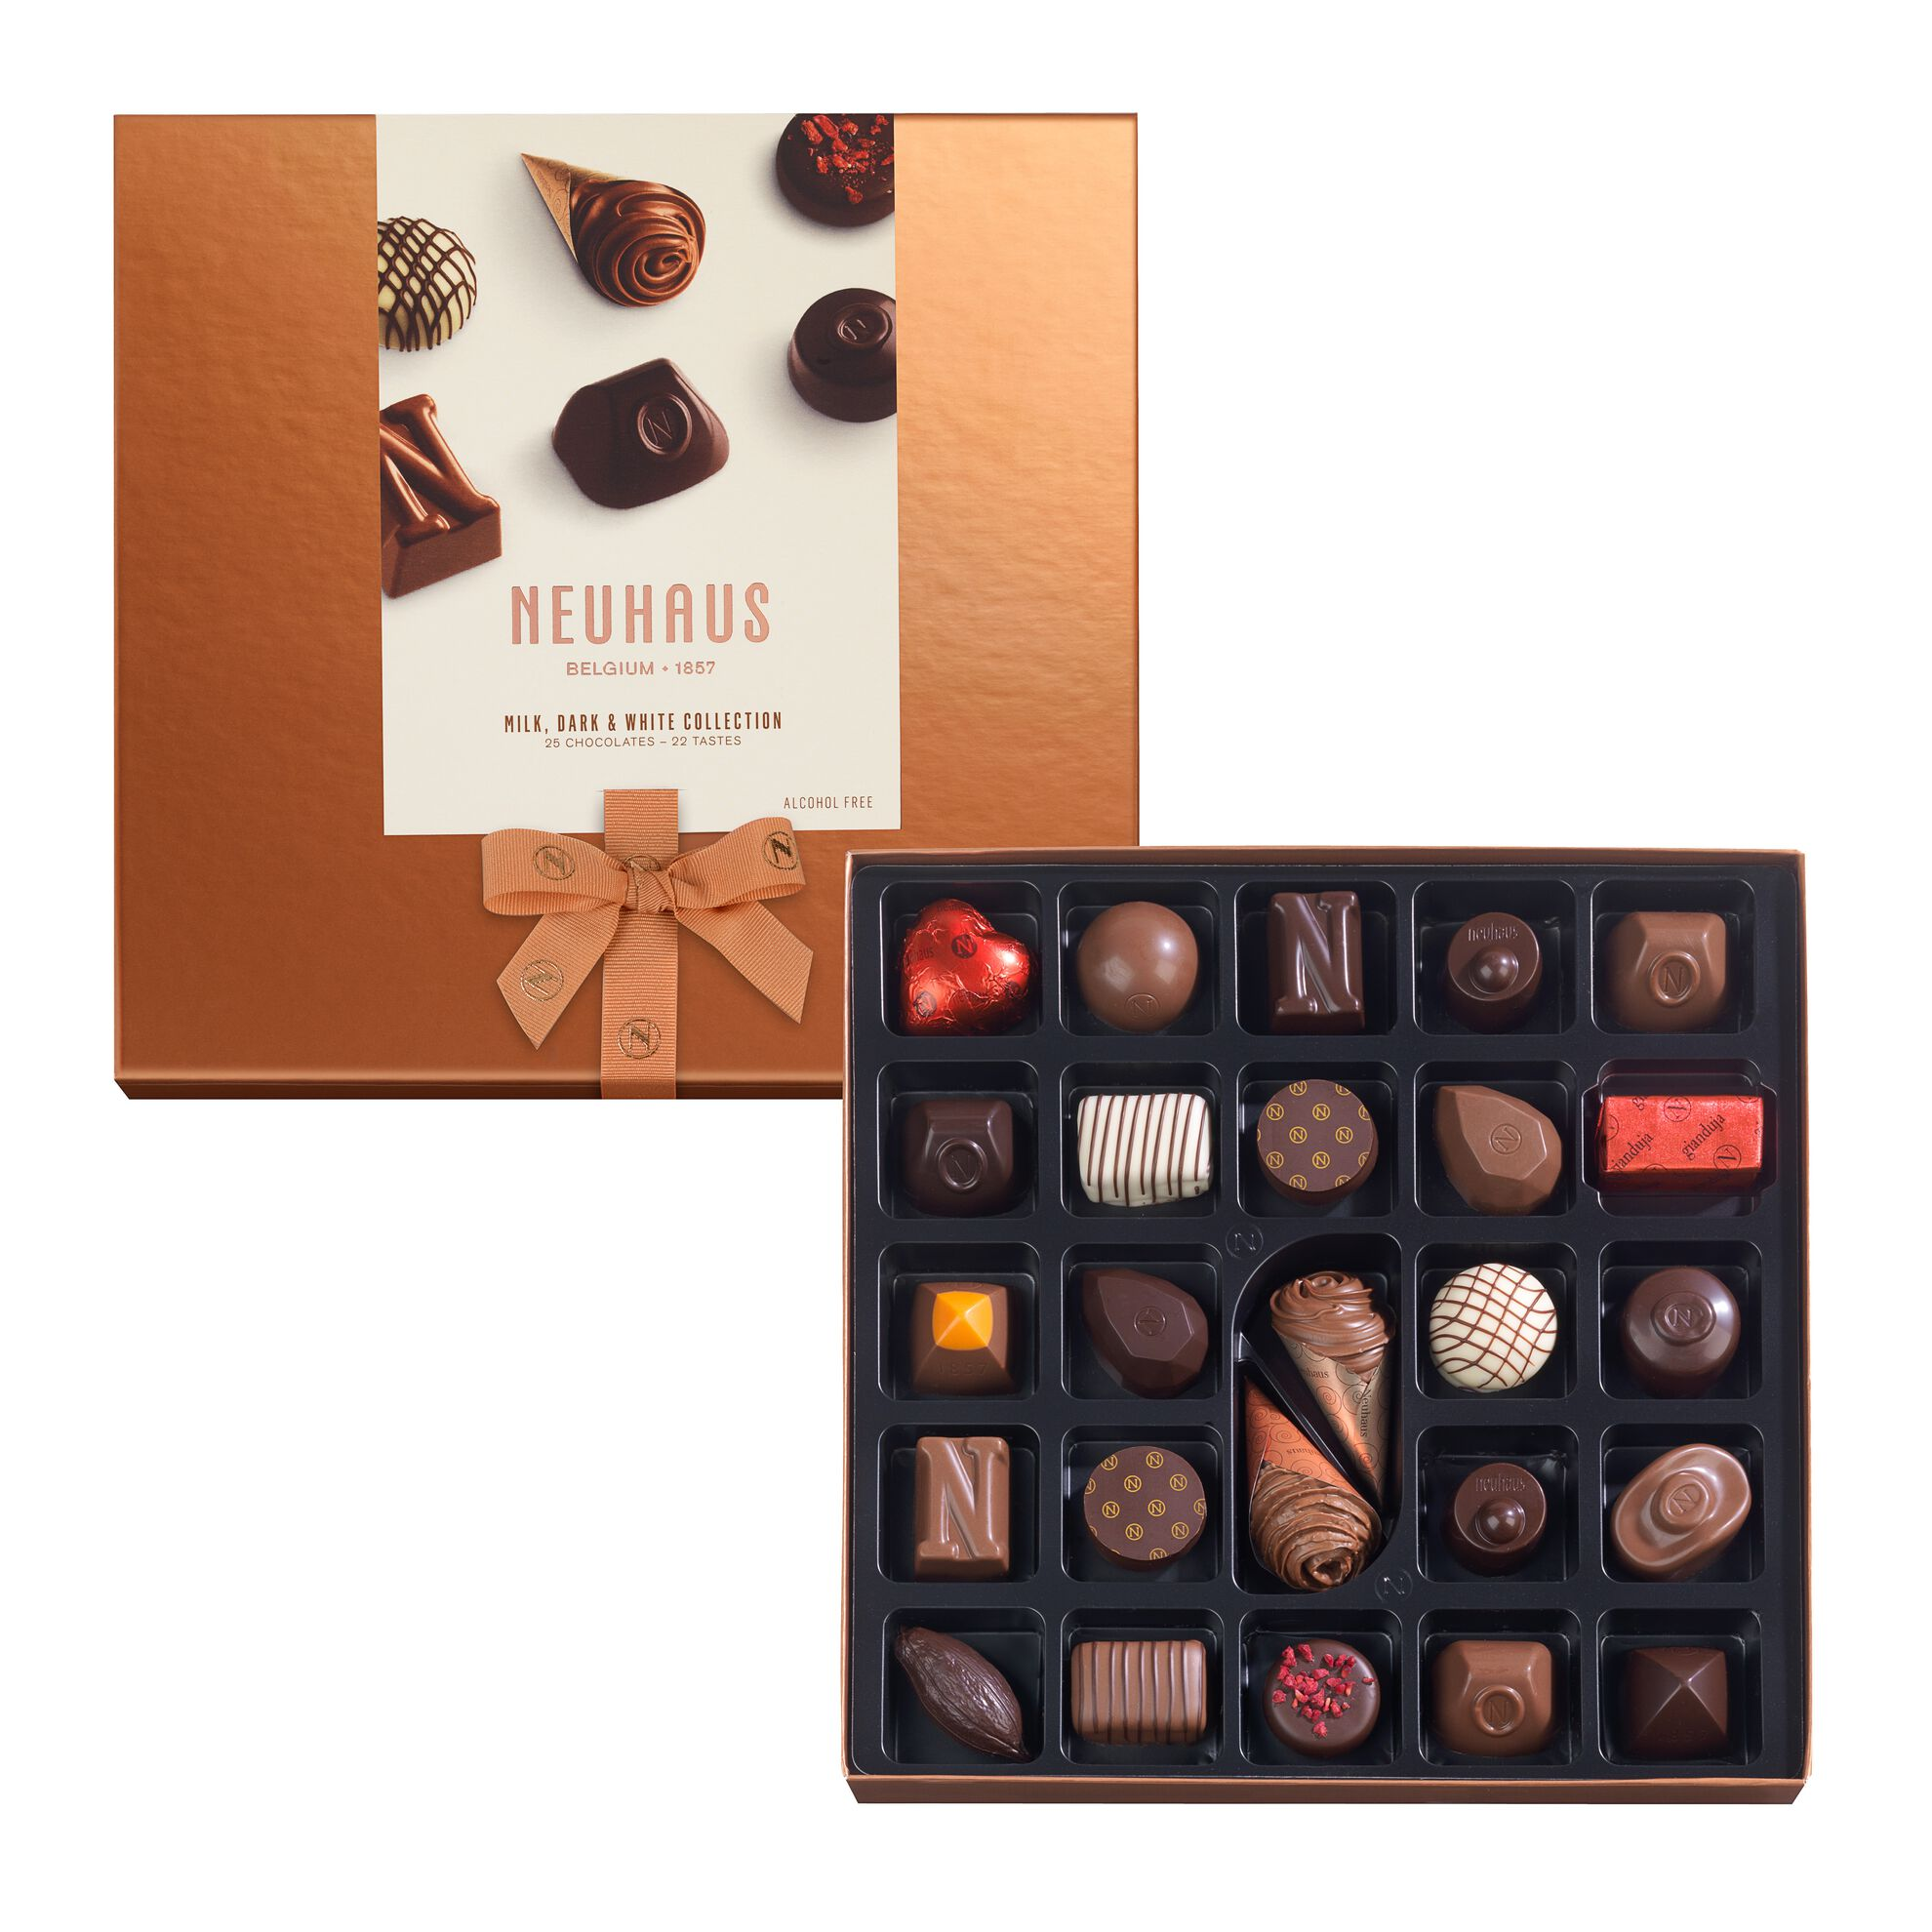 Neuhaus Discovery Collection 25 pcs image number 01